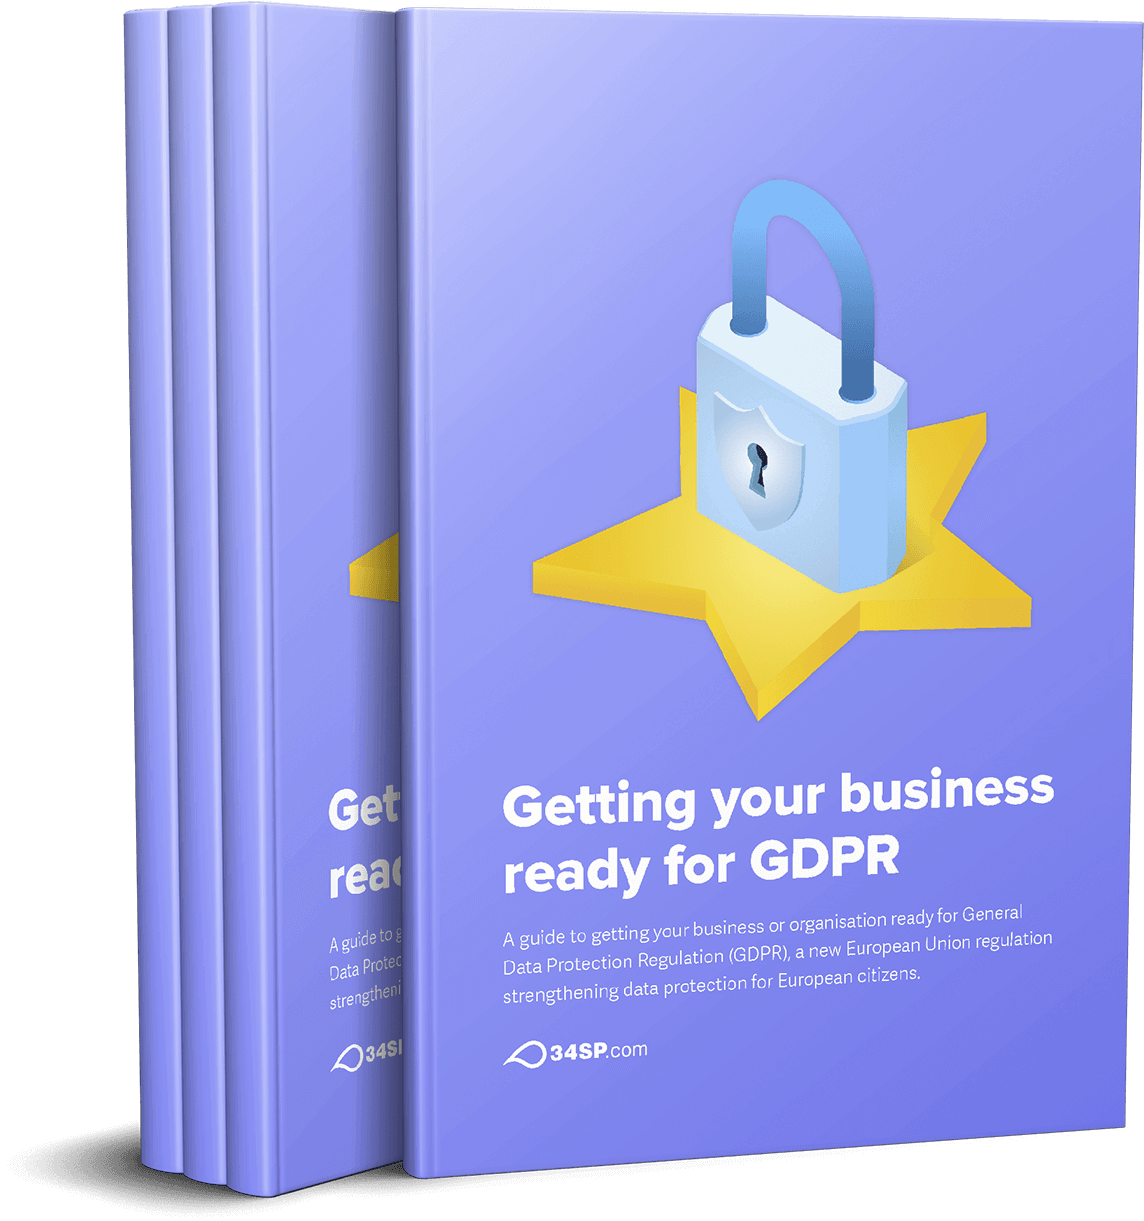 Free ebook: Getting your business ready for GDPR